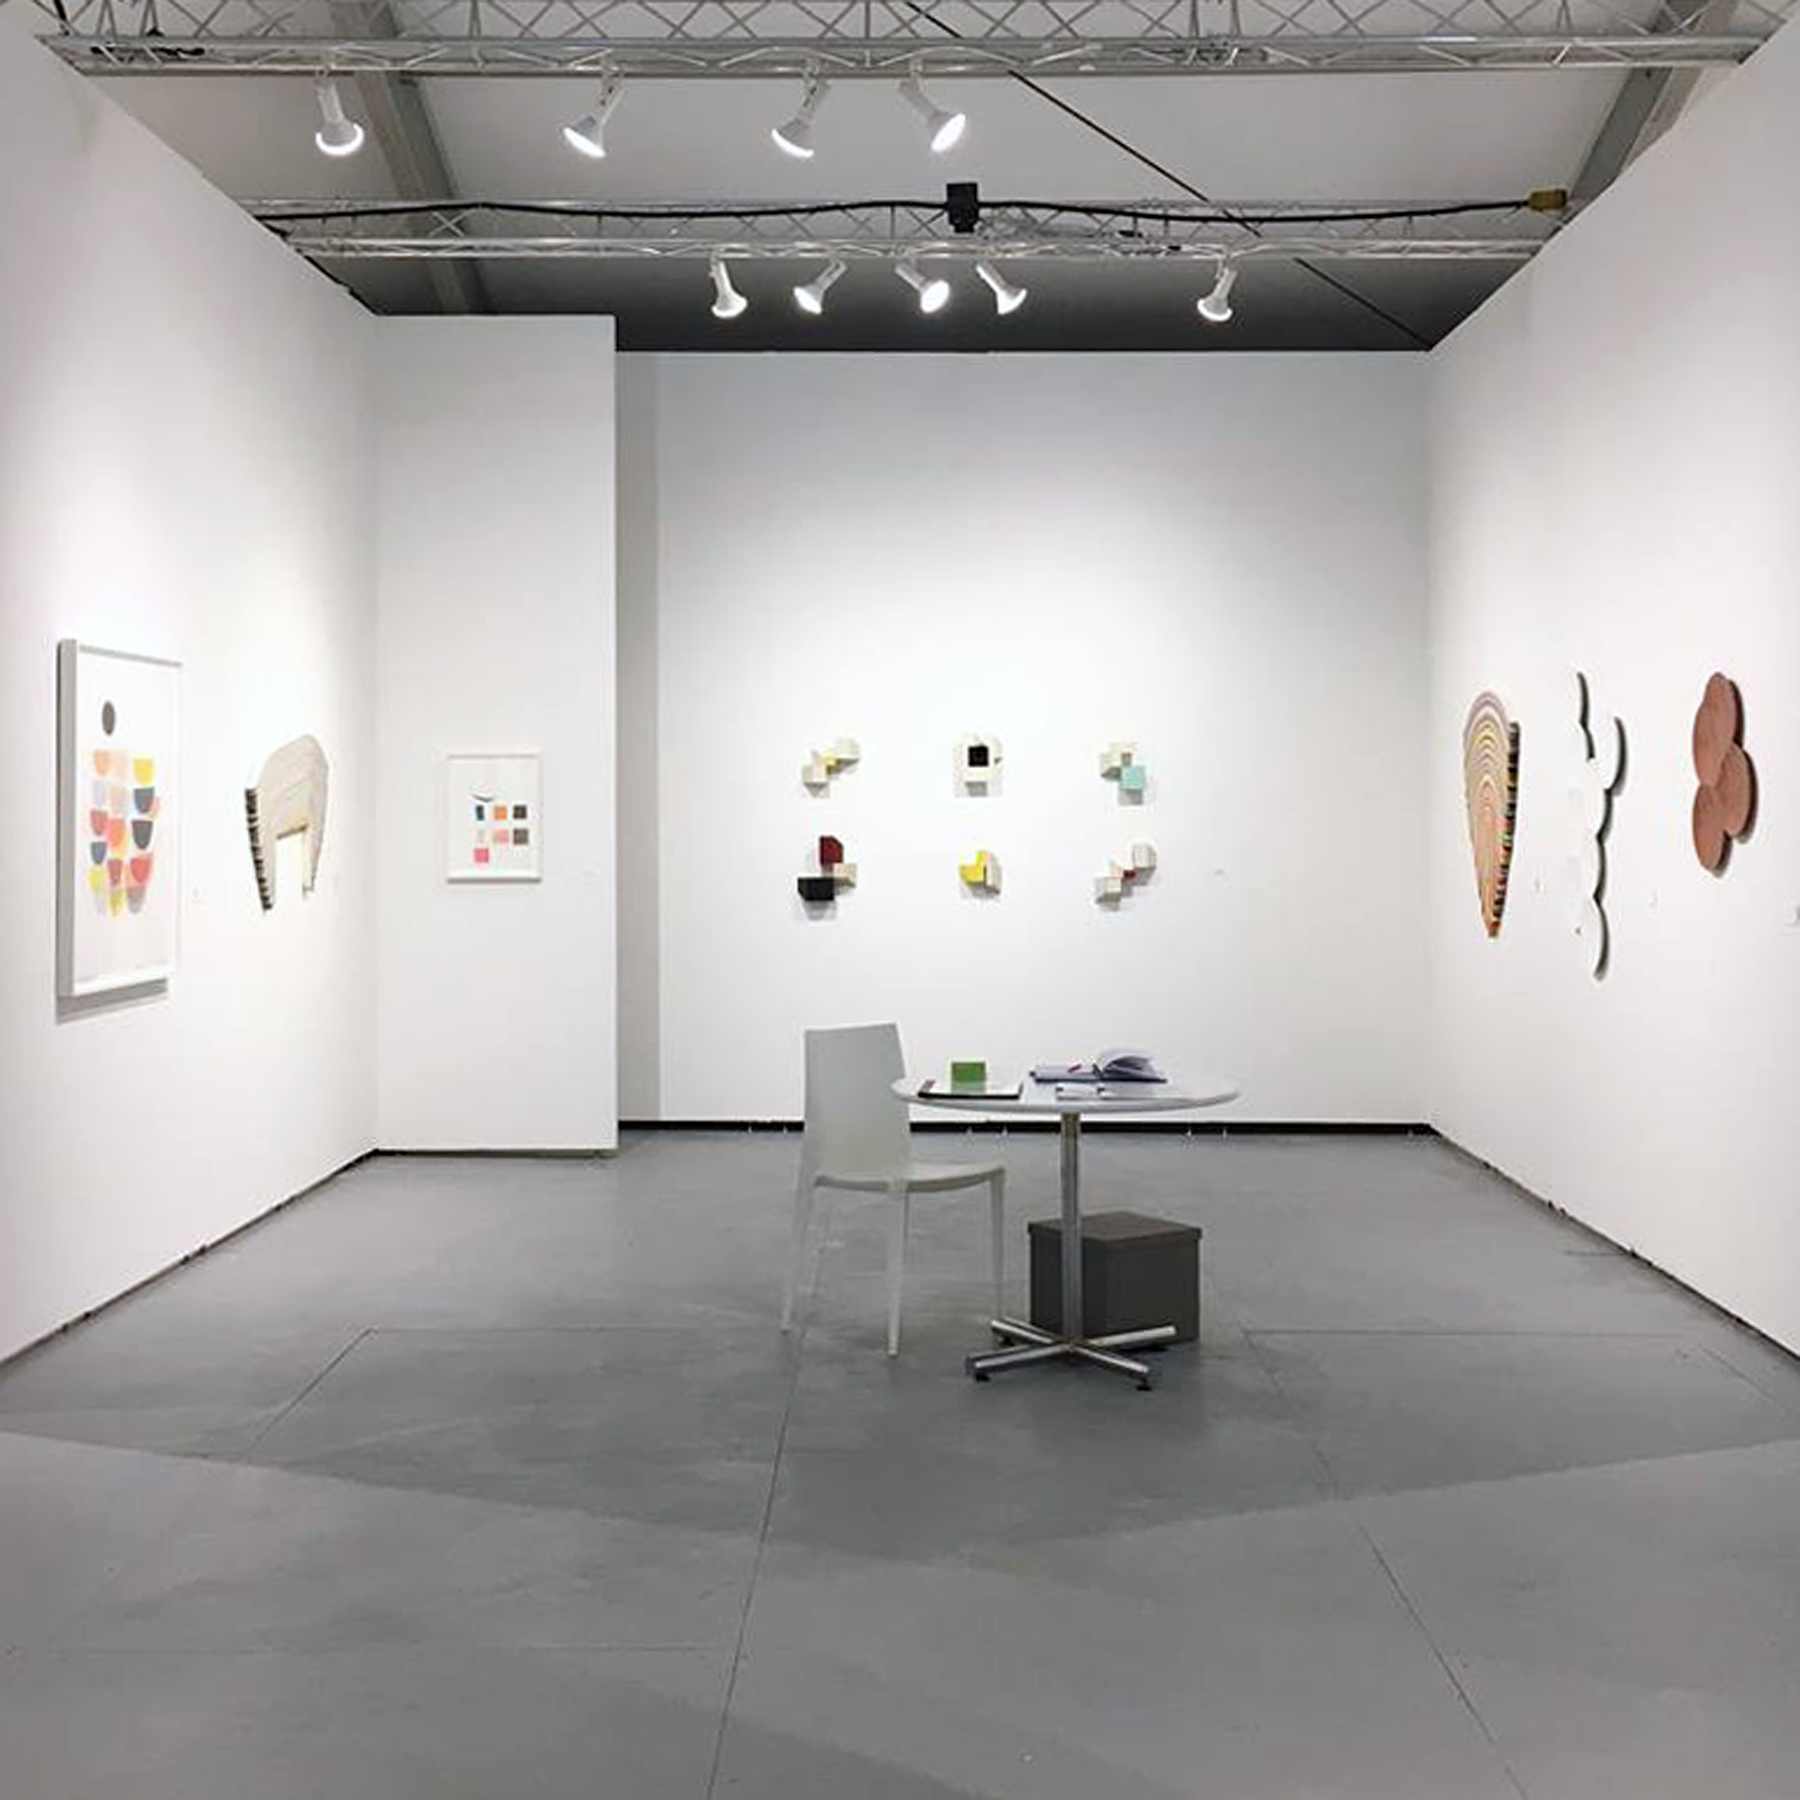 pulse 17 installation view 2.jpg